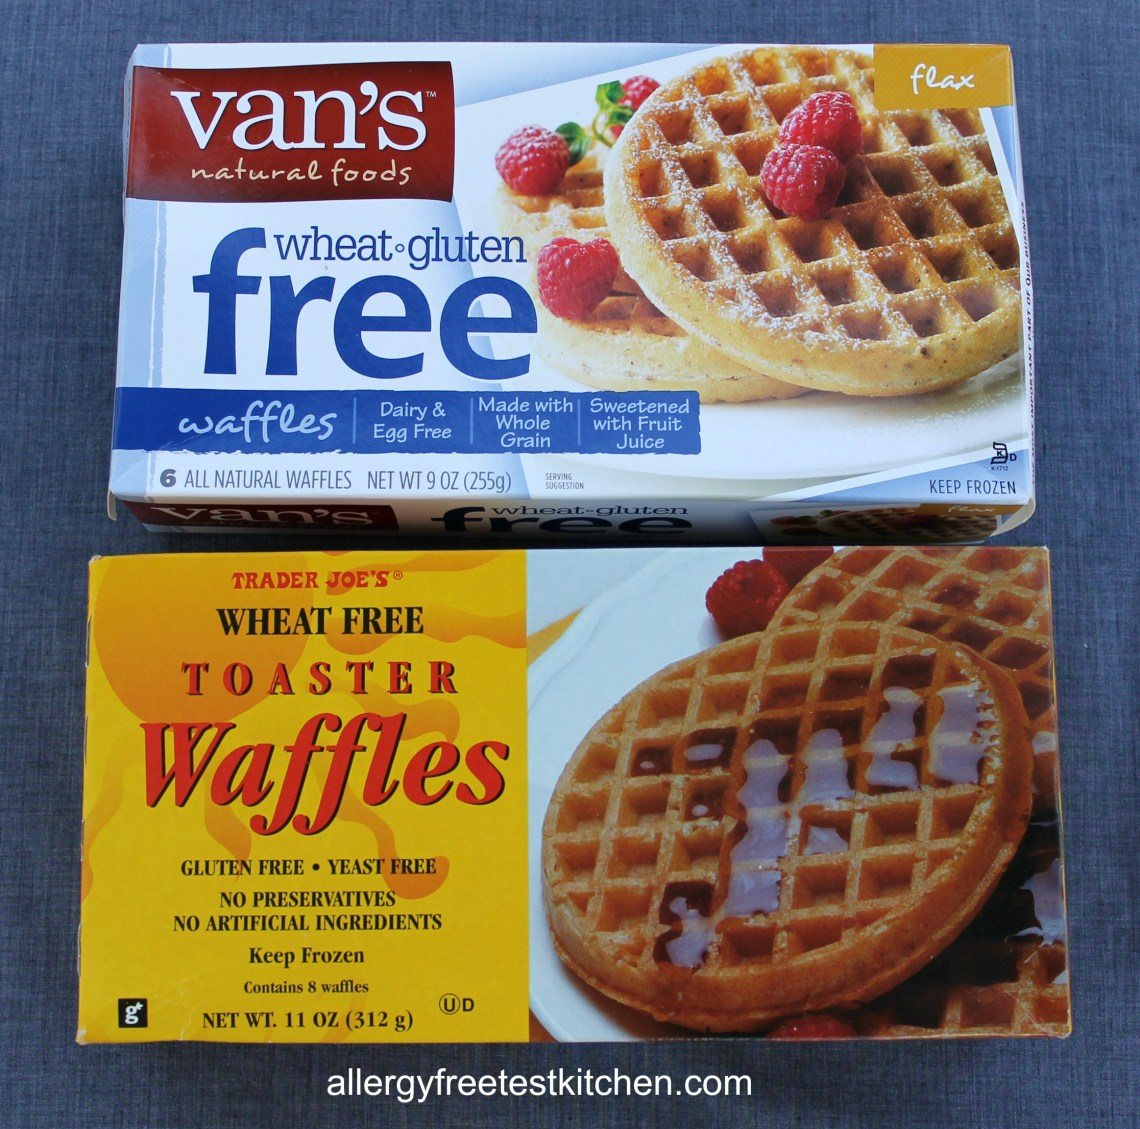 ... Foods Waffles-A Comparison/Product Review | Allergy Free Test Kitchen